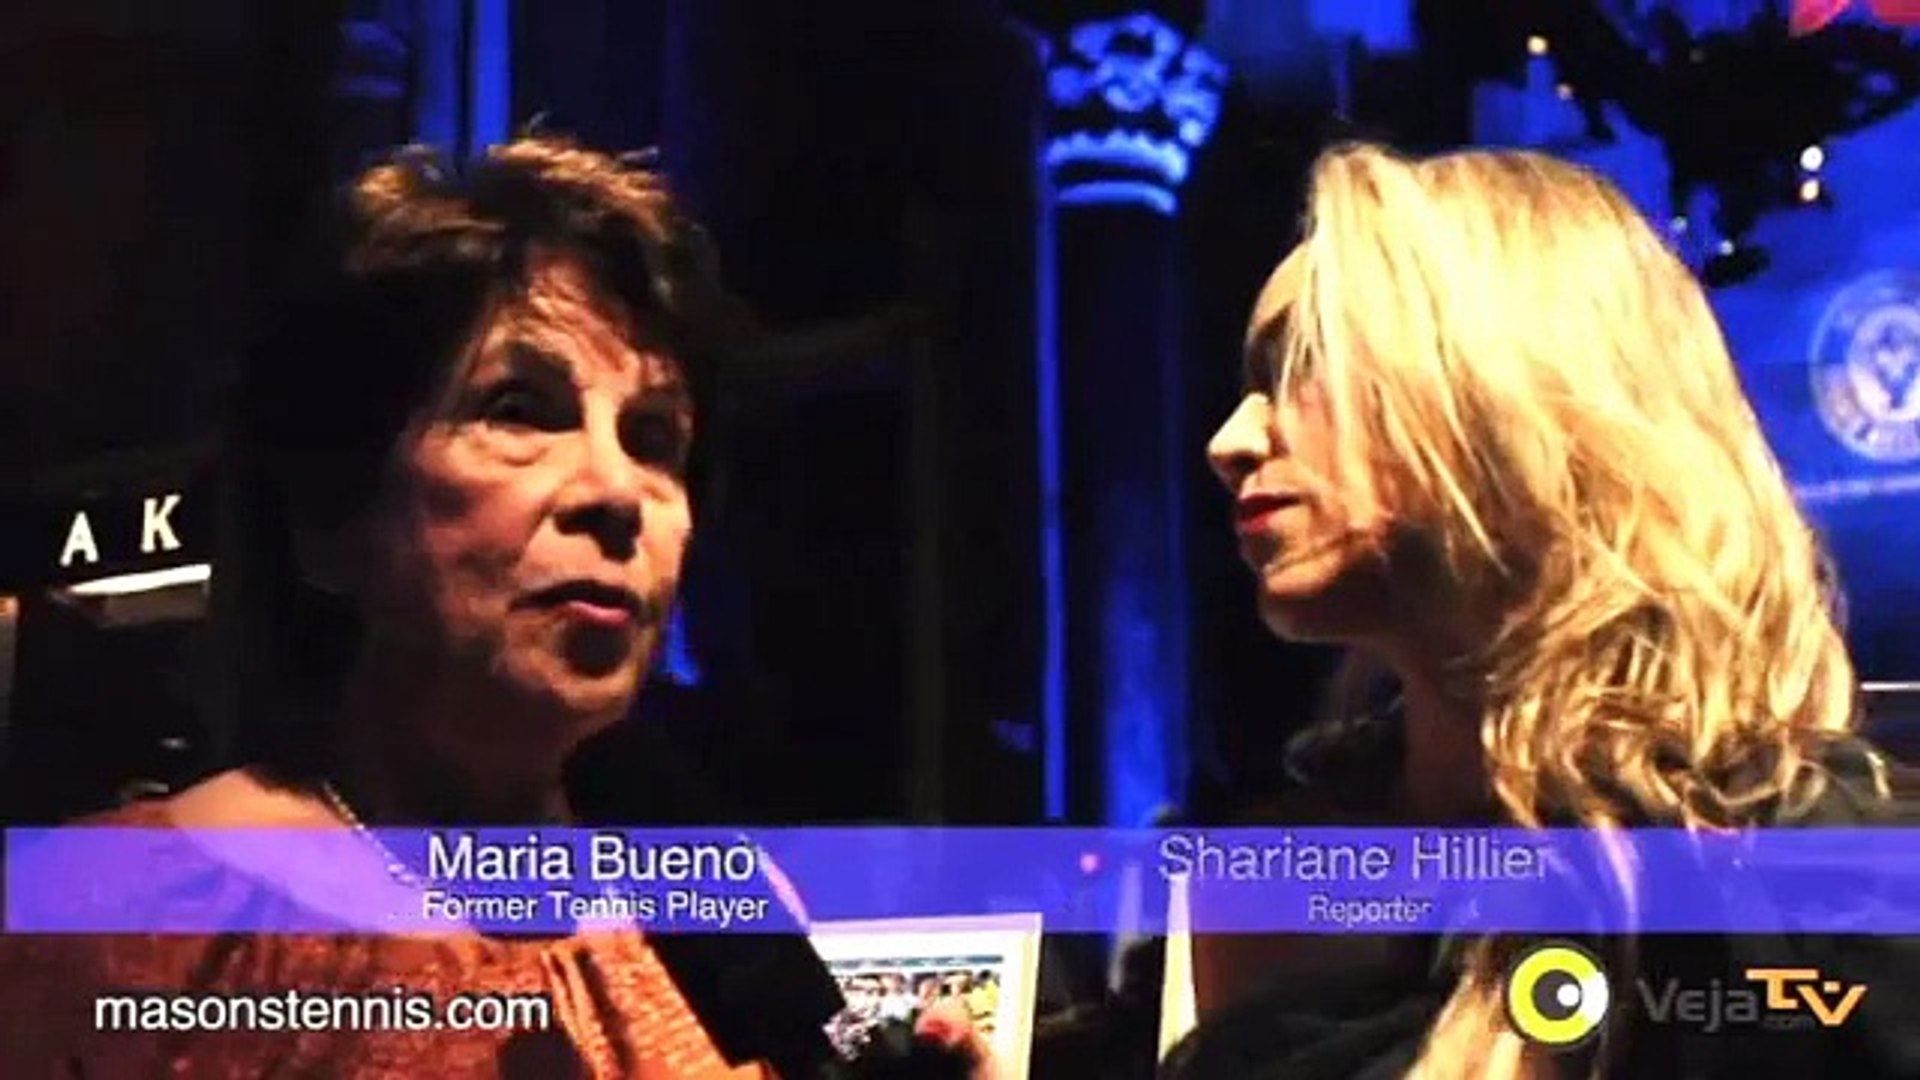 Masons Tennis: Maria Bueno at the International Hall of Fame 2012 NYC